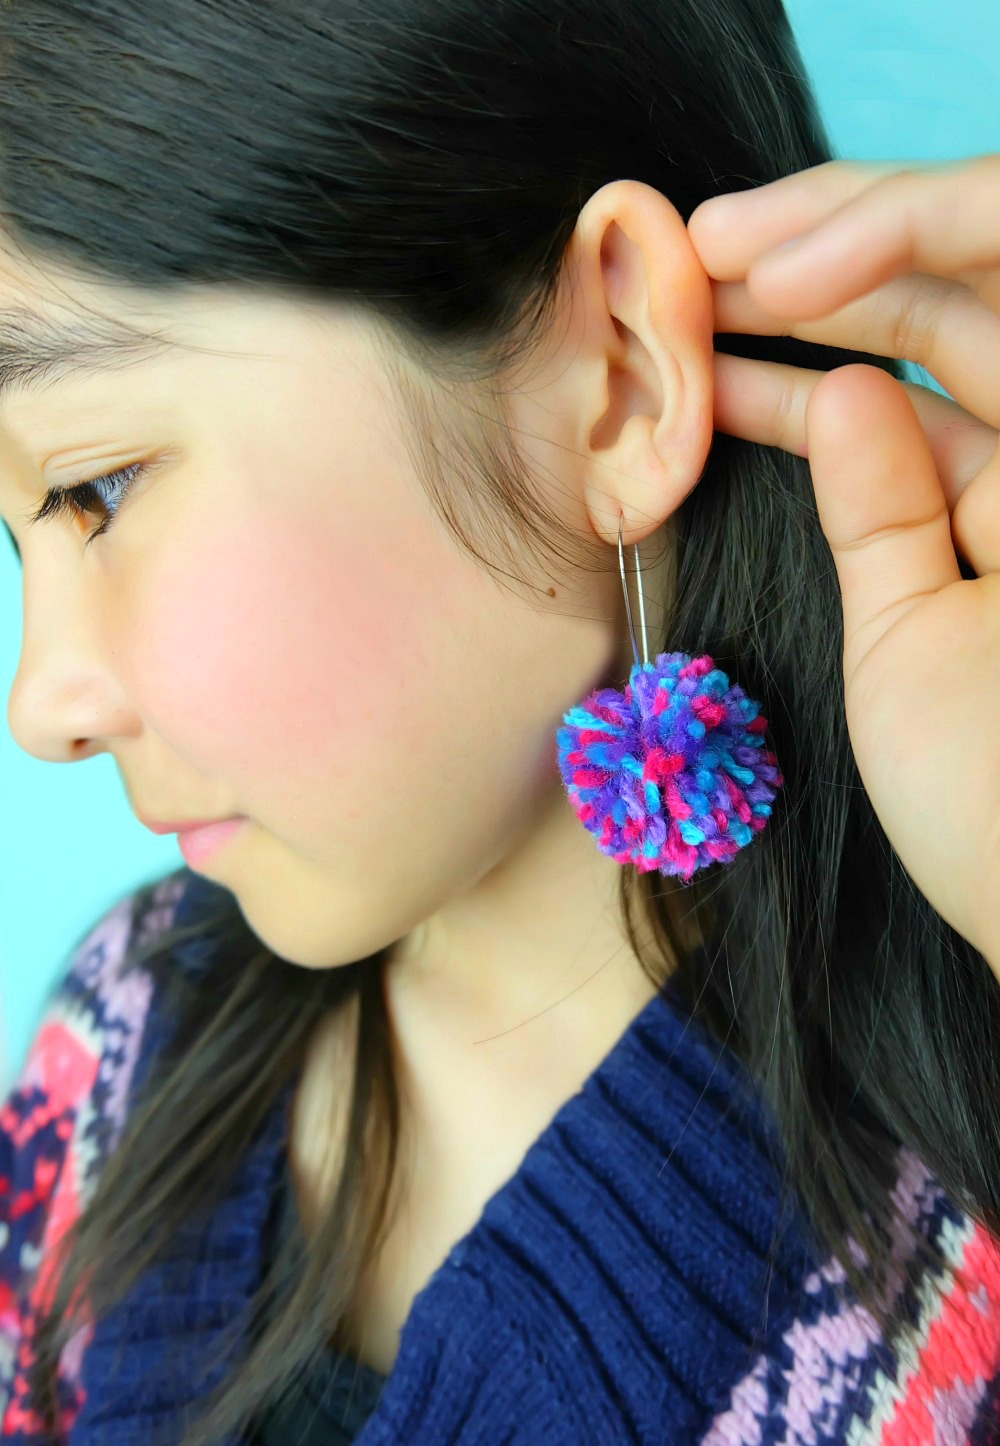 Learn how to make DIY Pom Pom Earrings in minutes with this quick and easy tutorial! Make an adorable pair of earrings to match any outfit! Also learn how to make a DIY pom pom maker in any size using a piece of cardboard! This would make an adorable handmade gift for teens or tweens! #DIY #Craft #pompoms #Earrings